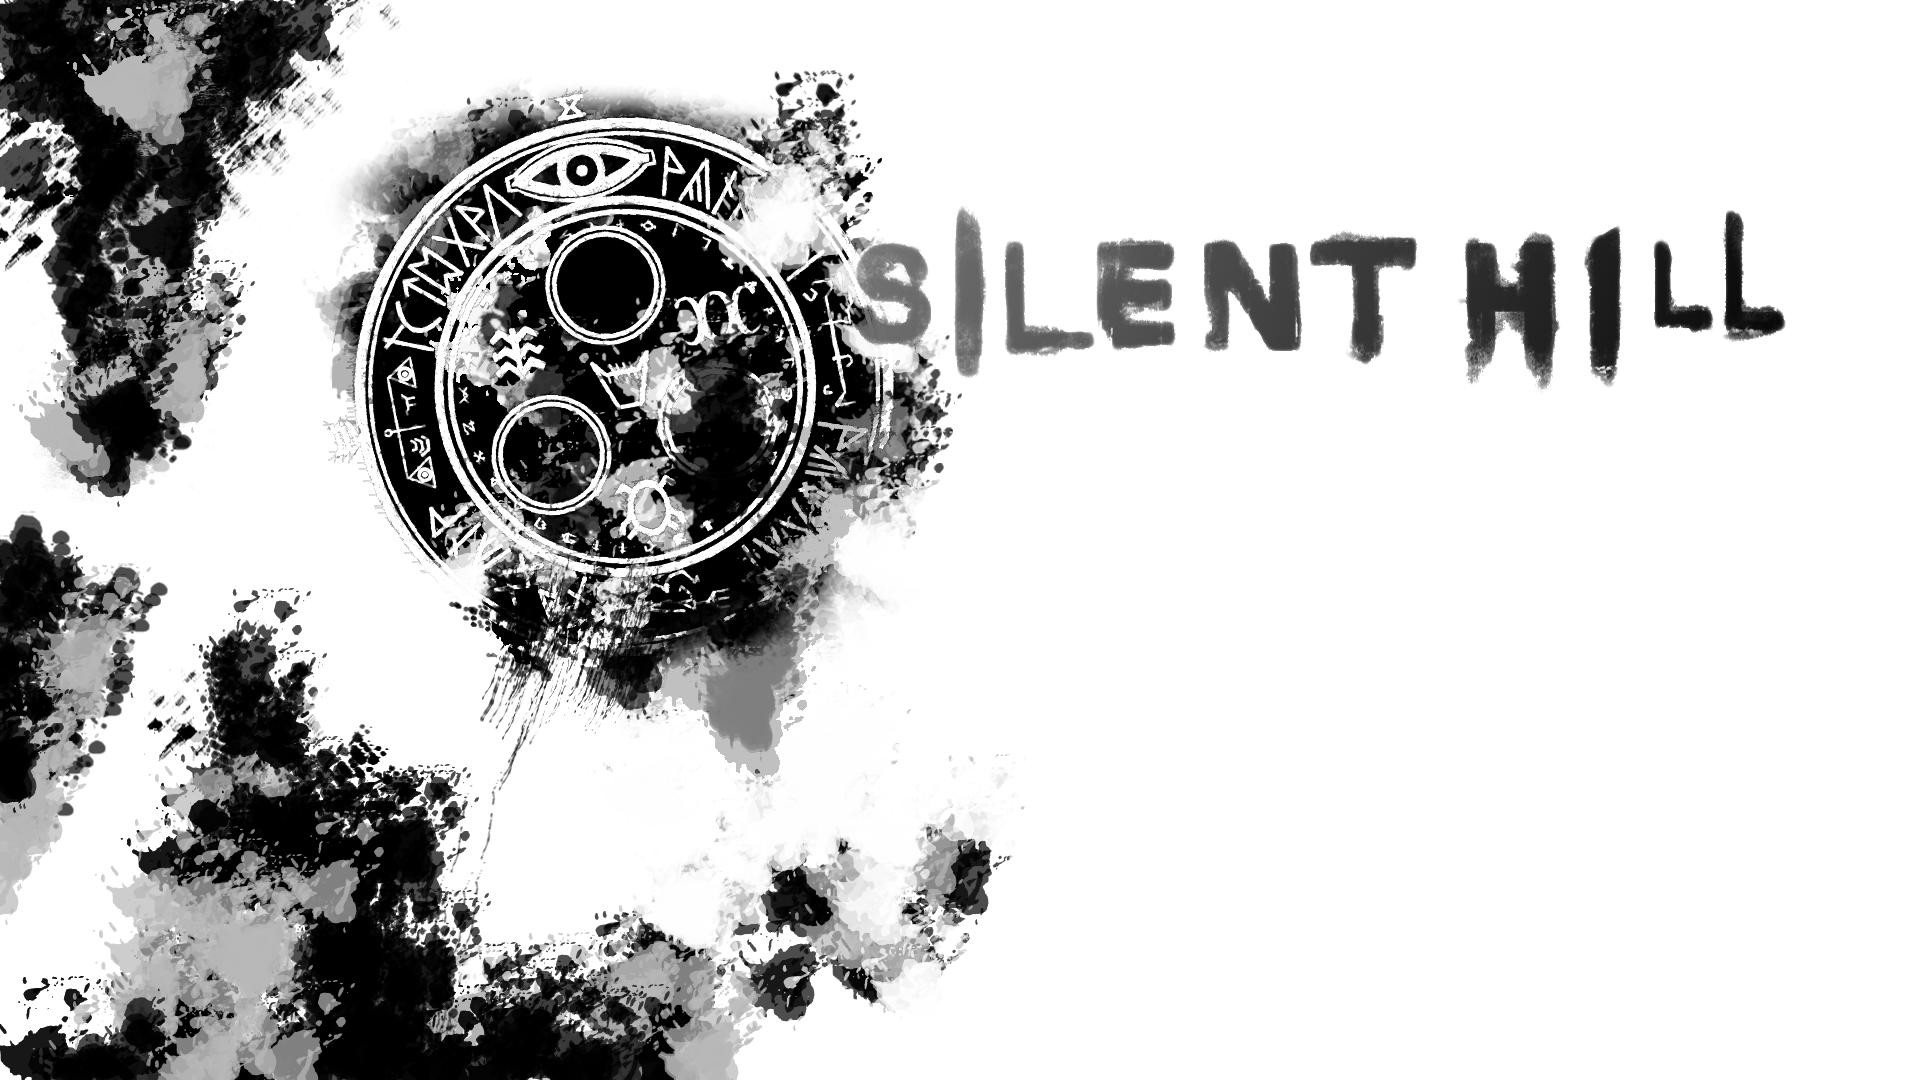 Silent Hill Wallpaper Laptop.